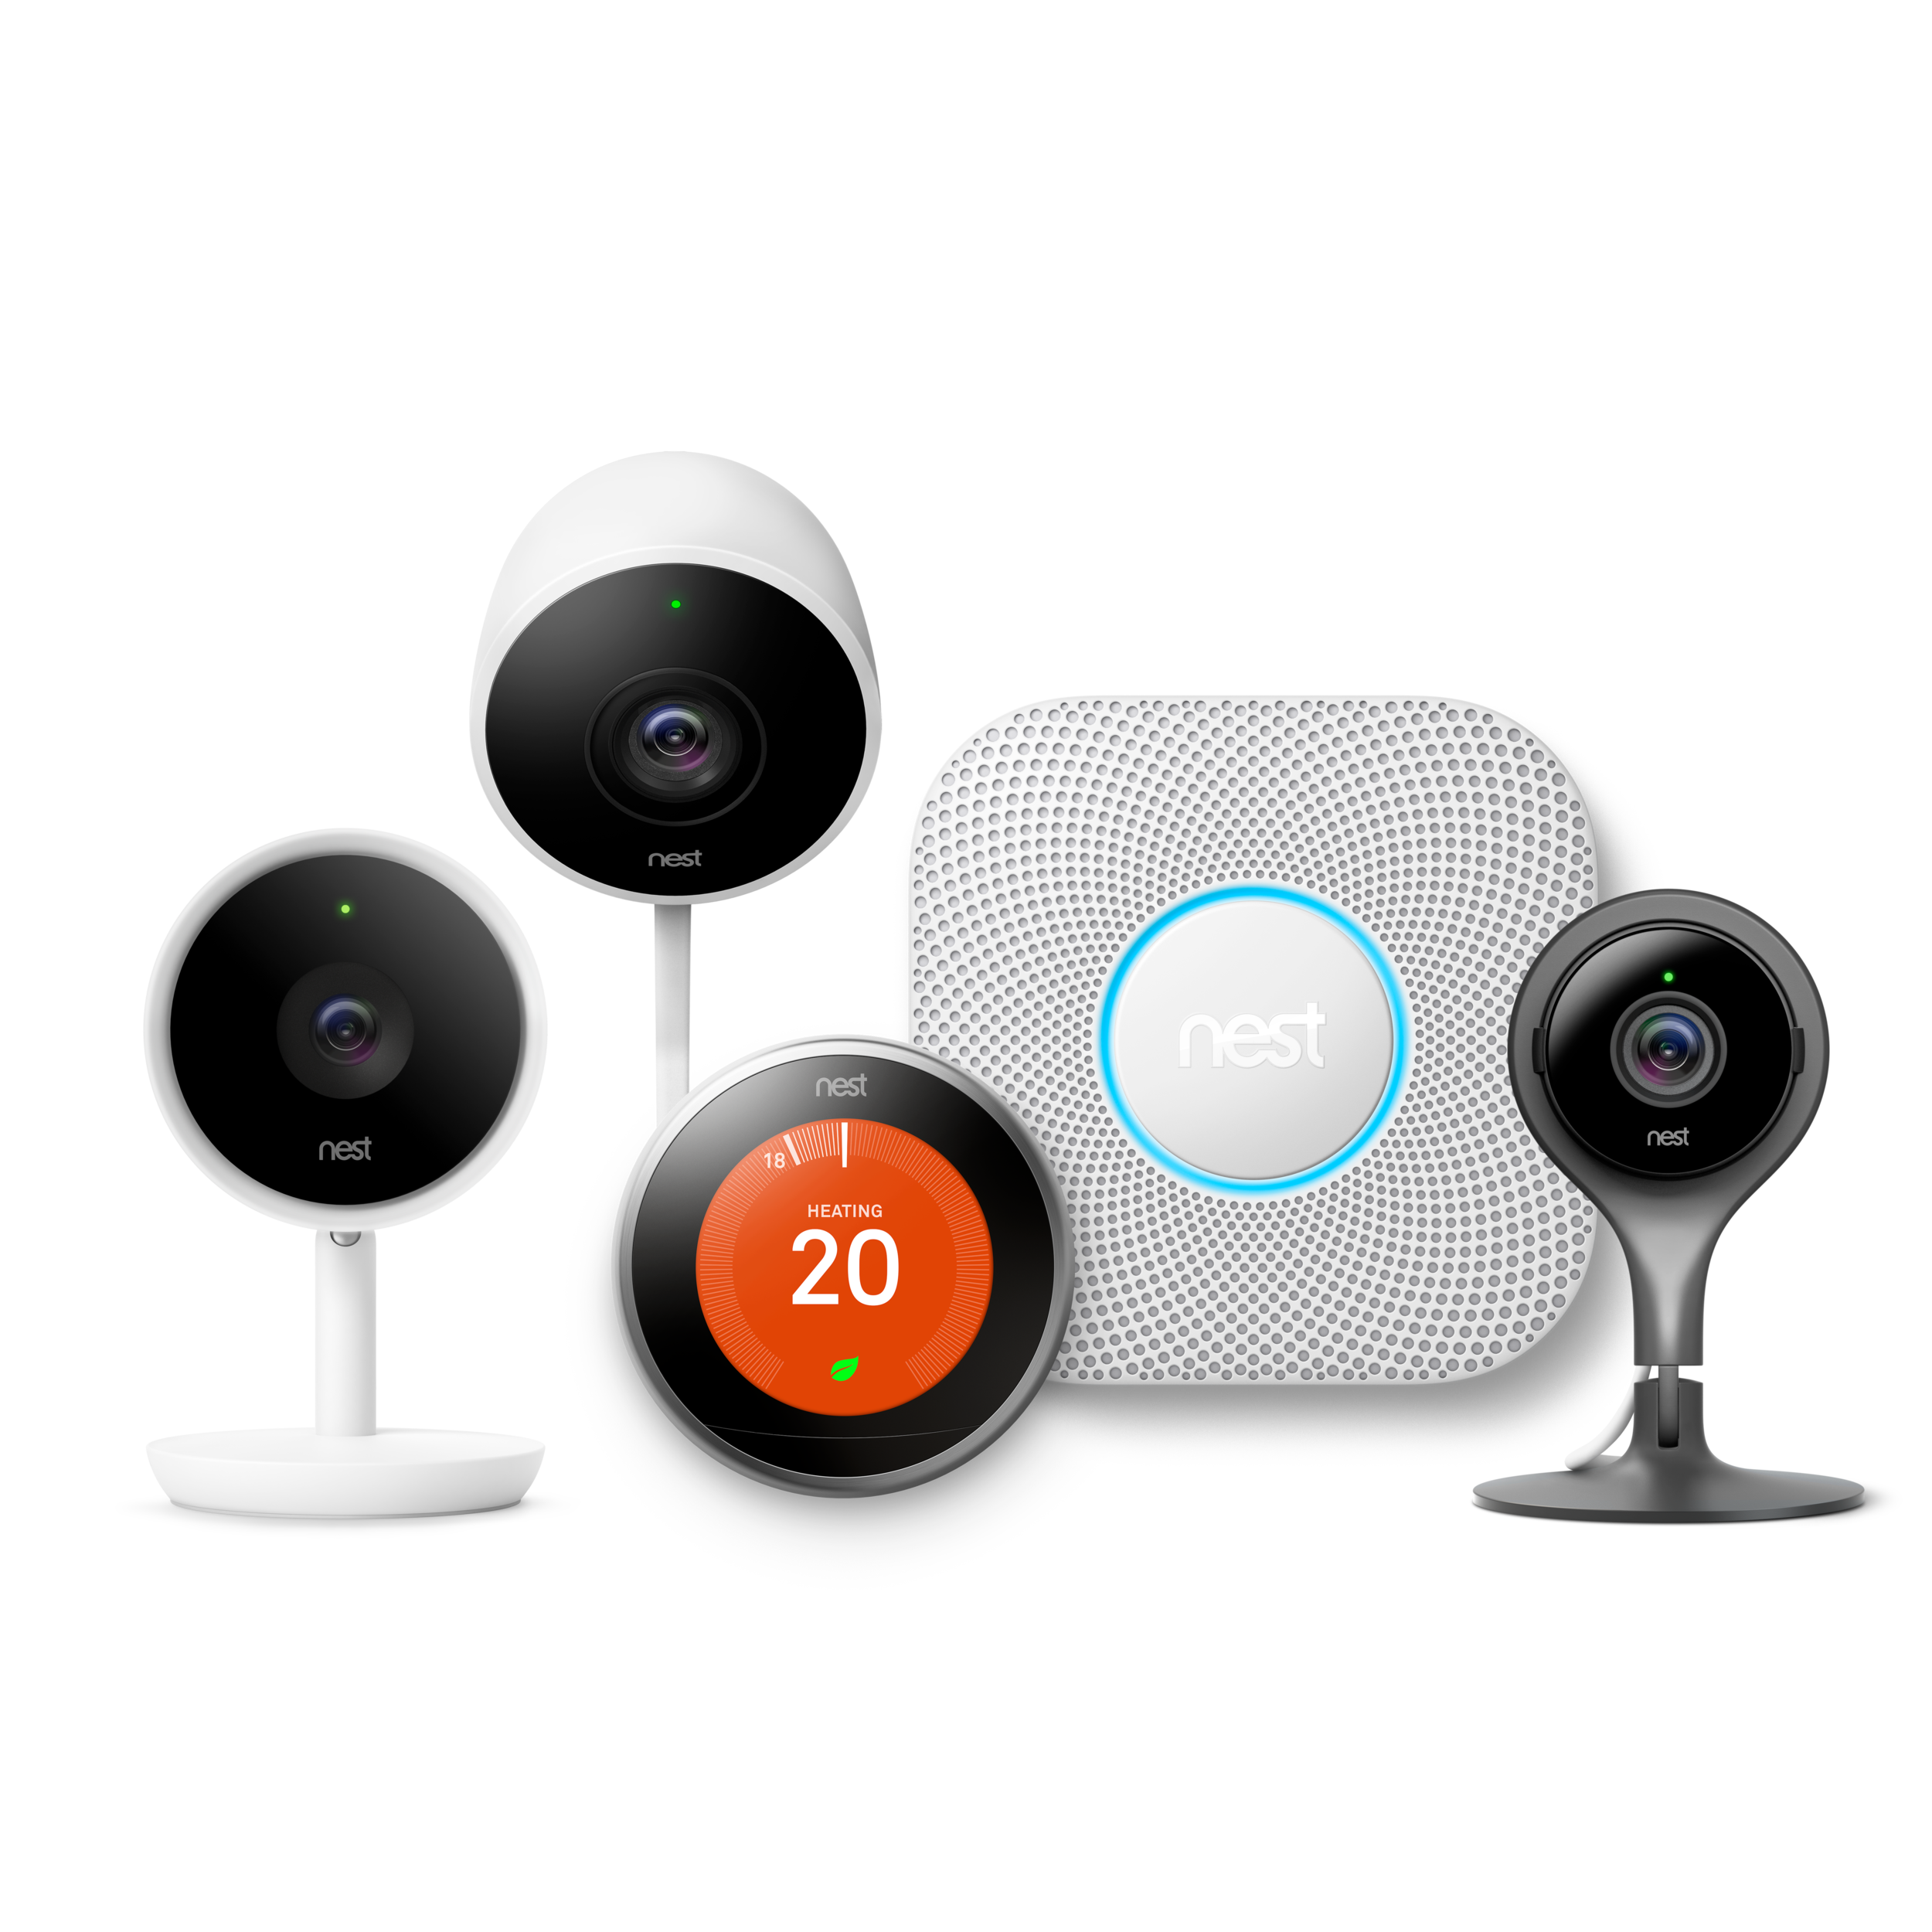 Nest Pro Install - Home Automation is getting more affordable, easier to use and a lot more fun. We really like the new line of Nest Products and have joined their team of Pro Installers. Nest products are great and can make your home more secure and energy efficient. We have seen 25% reductions on Hydro bills with the Nest Thermostats. Link Nest products with a Google Home or Google Mini and you are now controlling your house hands free.